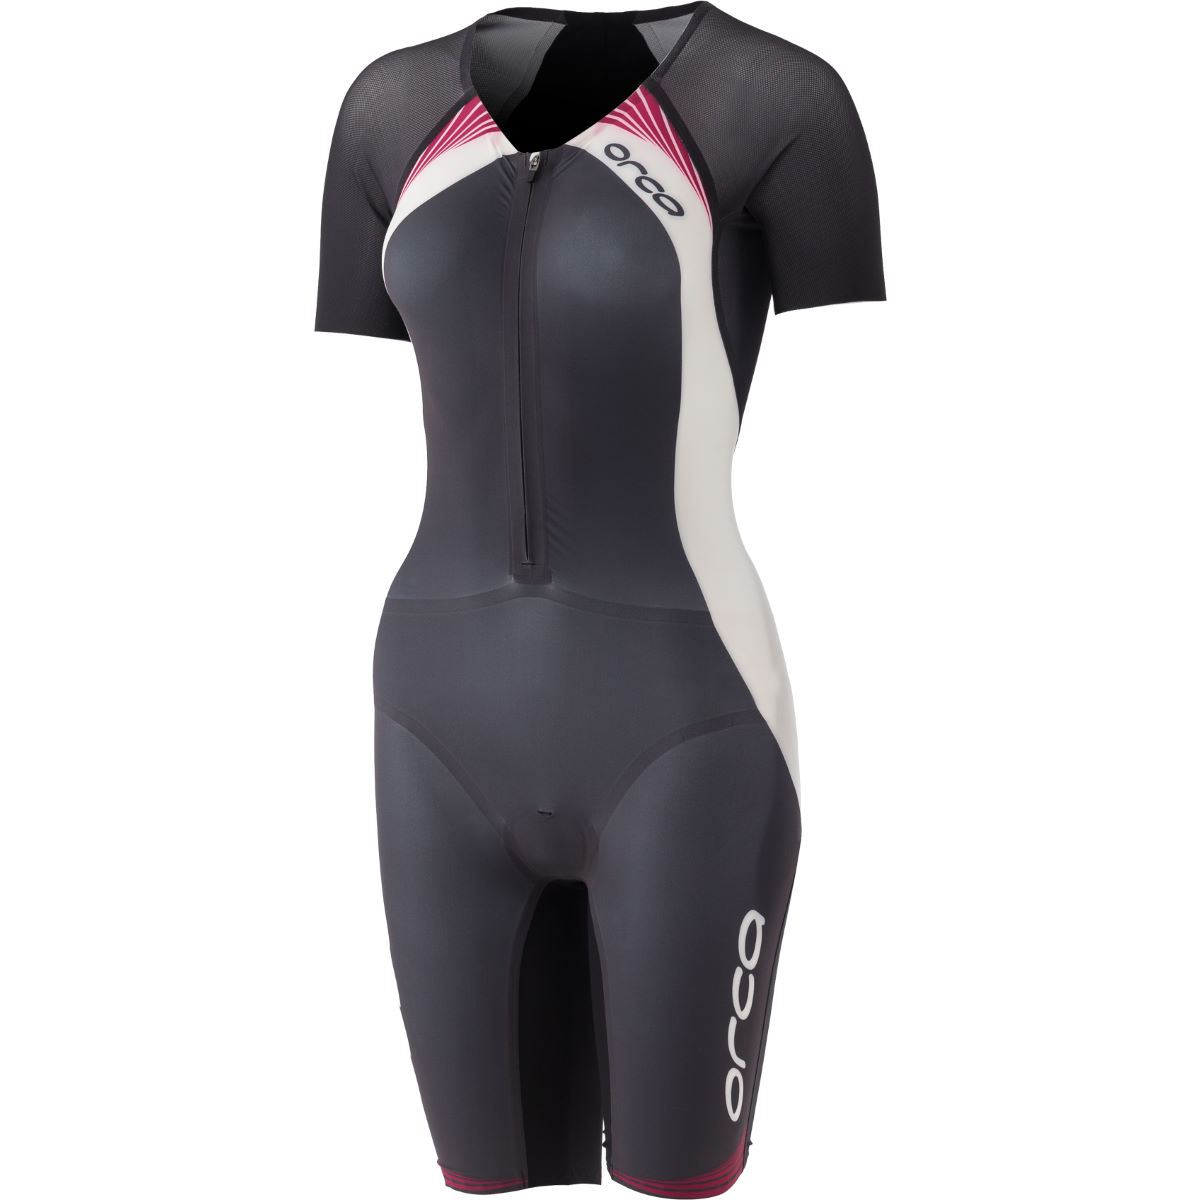 Trifonction Femme Orca RS1 Dream Kona (2016) - 8 UK Noir